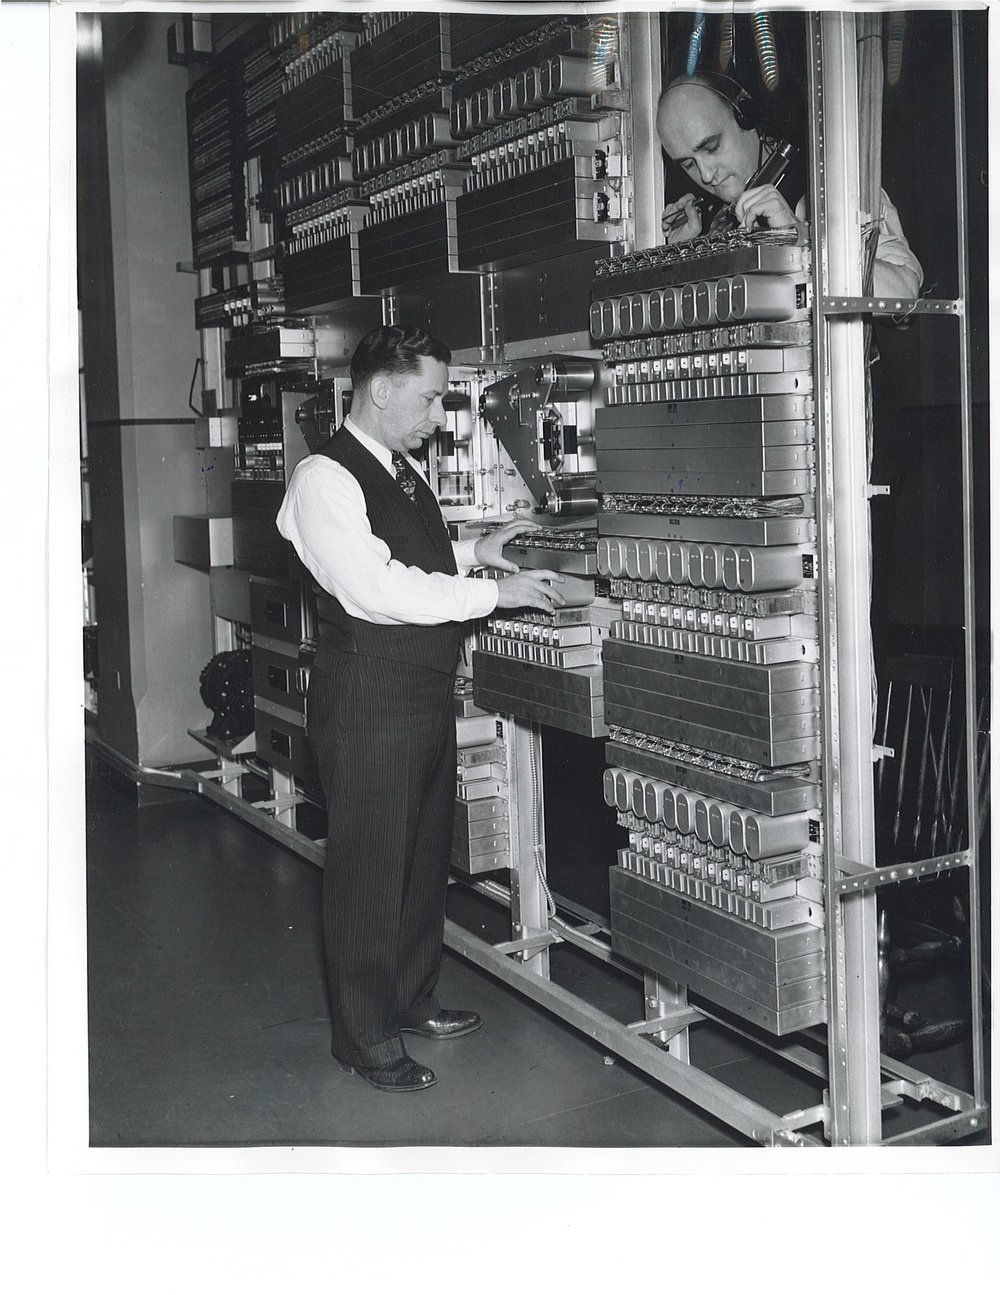 Maintenance men work on the automated recording and reproducing apparatus that communicated weather forecasts to tens of thousands of Detroit telephone users in 1940.